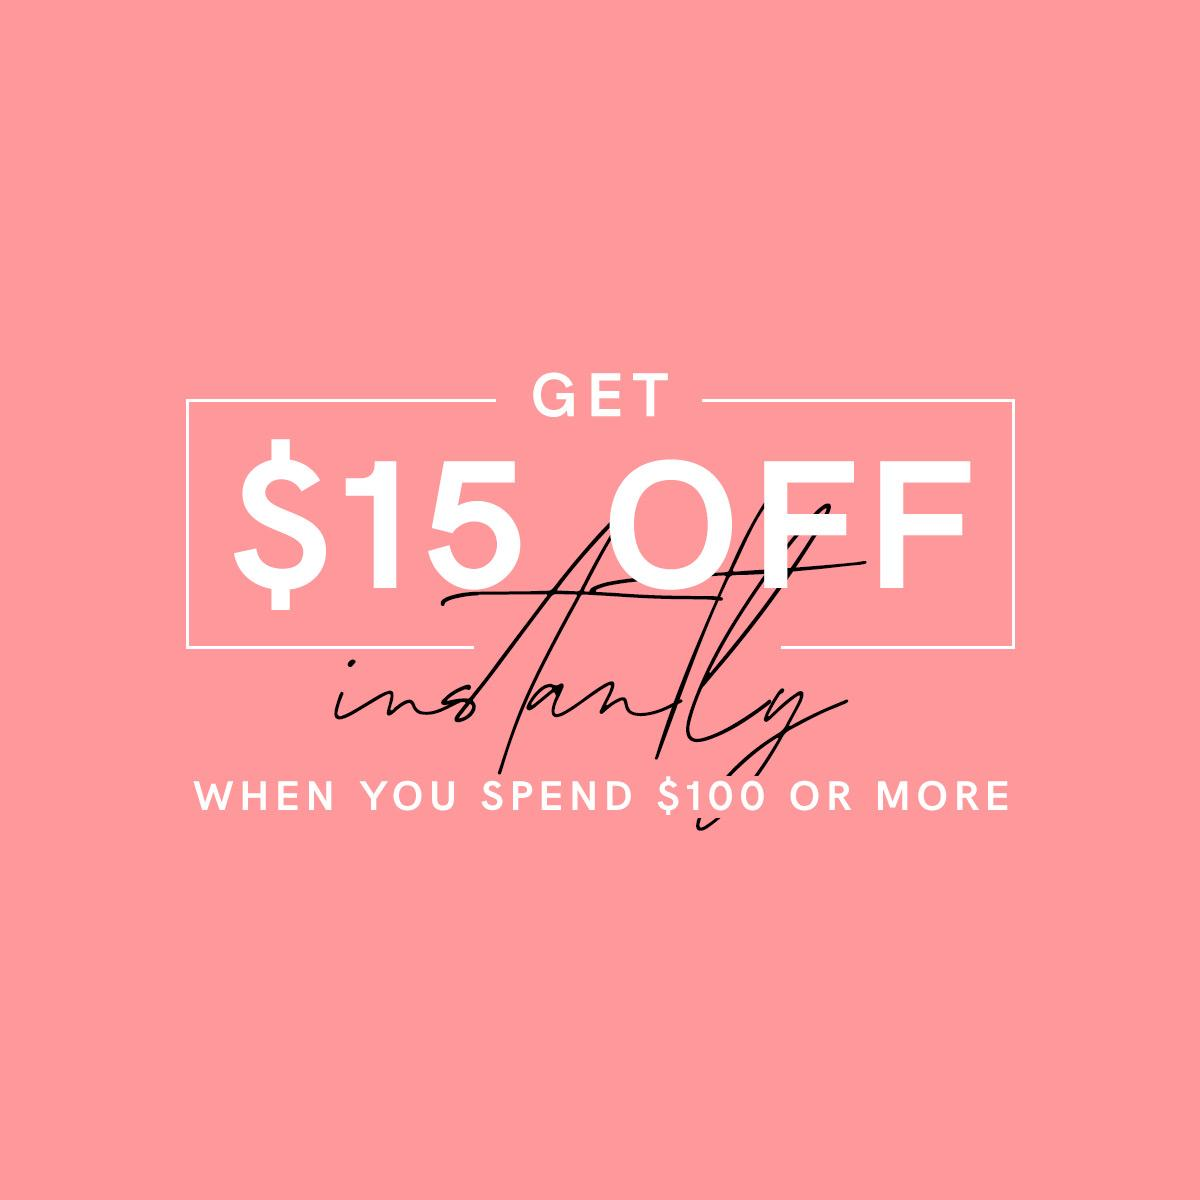 Last chance to shop and save! Until midnight ET, get $15 off instantly when you spend $100 or more. Offer is automatically applied at checkout when you click the link below.   Shop Now: https://t.co/ZMEvyYpPqd~ https://t.co/tLI8foFuWA